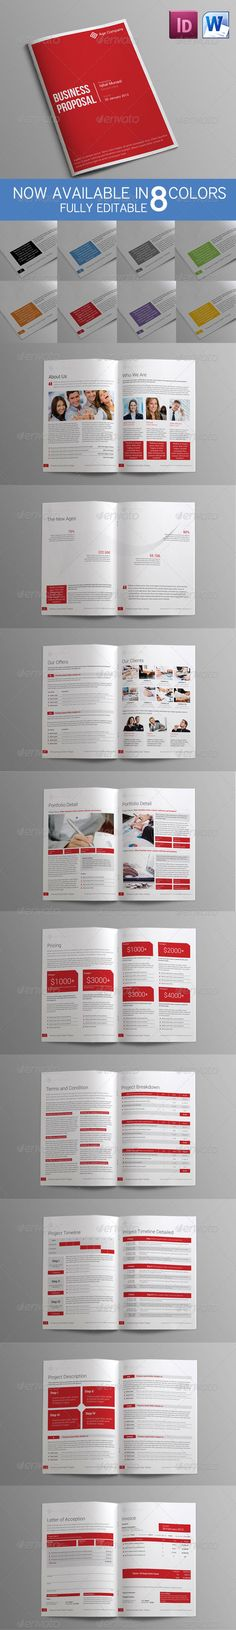 Sleman Clean Proposal Template Volume 3 Proposal templates - microsoft word proposal template free download